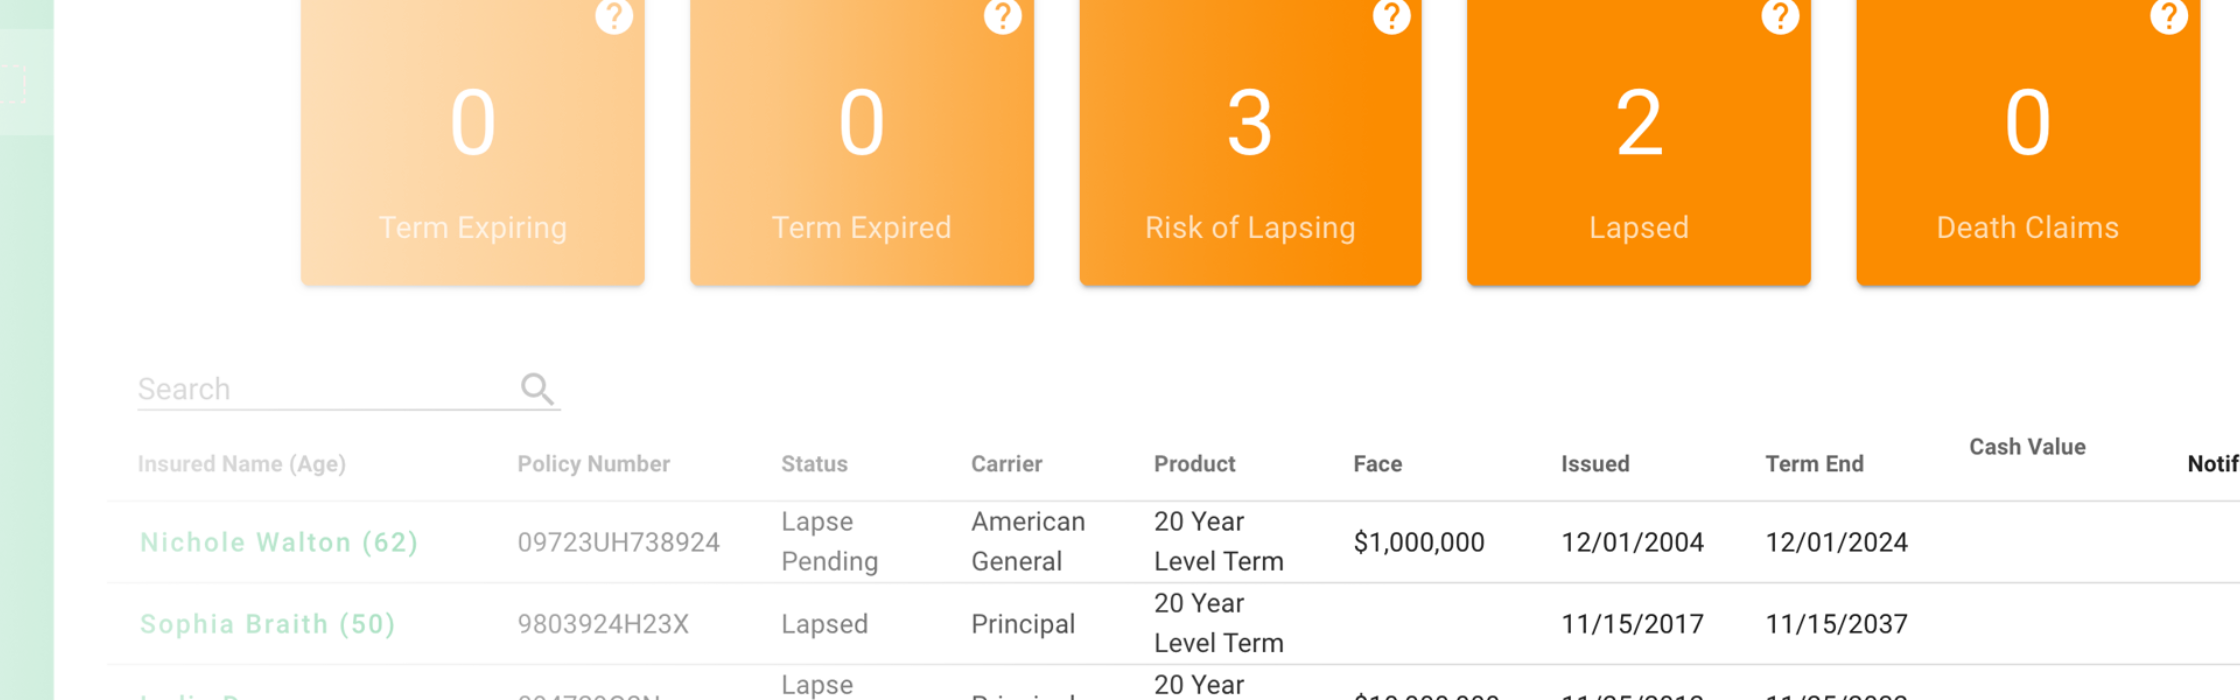 Inforce Vision Dashboard for Ash Brokerage In Force Policy Management